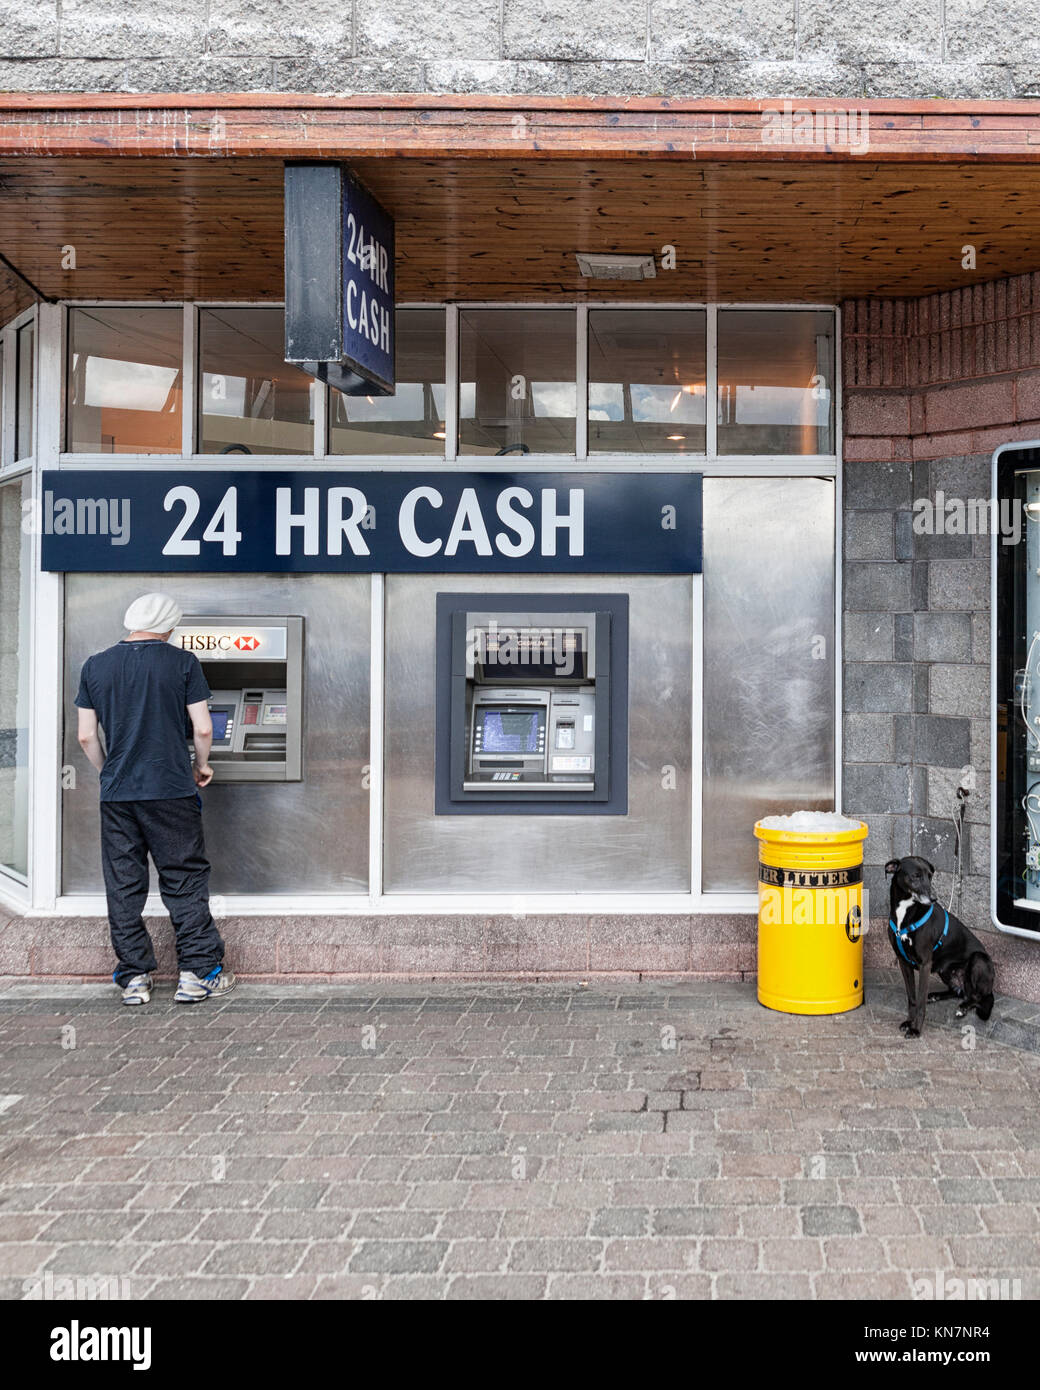 Young adult man withdrawing cash from 24 hour cash point ATM and tied up dog waiting close by, Scotland, UK  Model Stock Photo